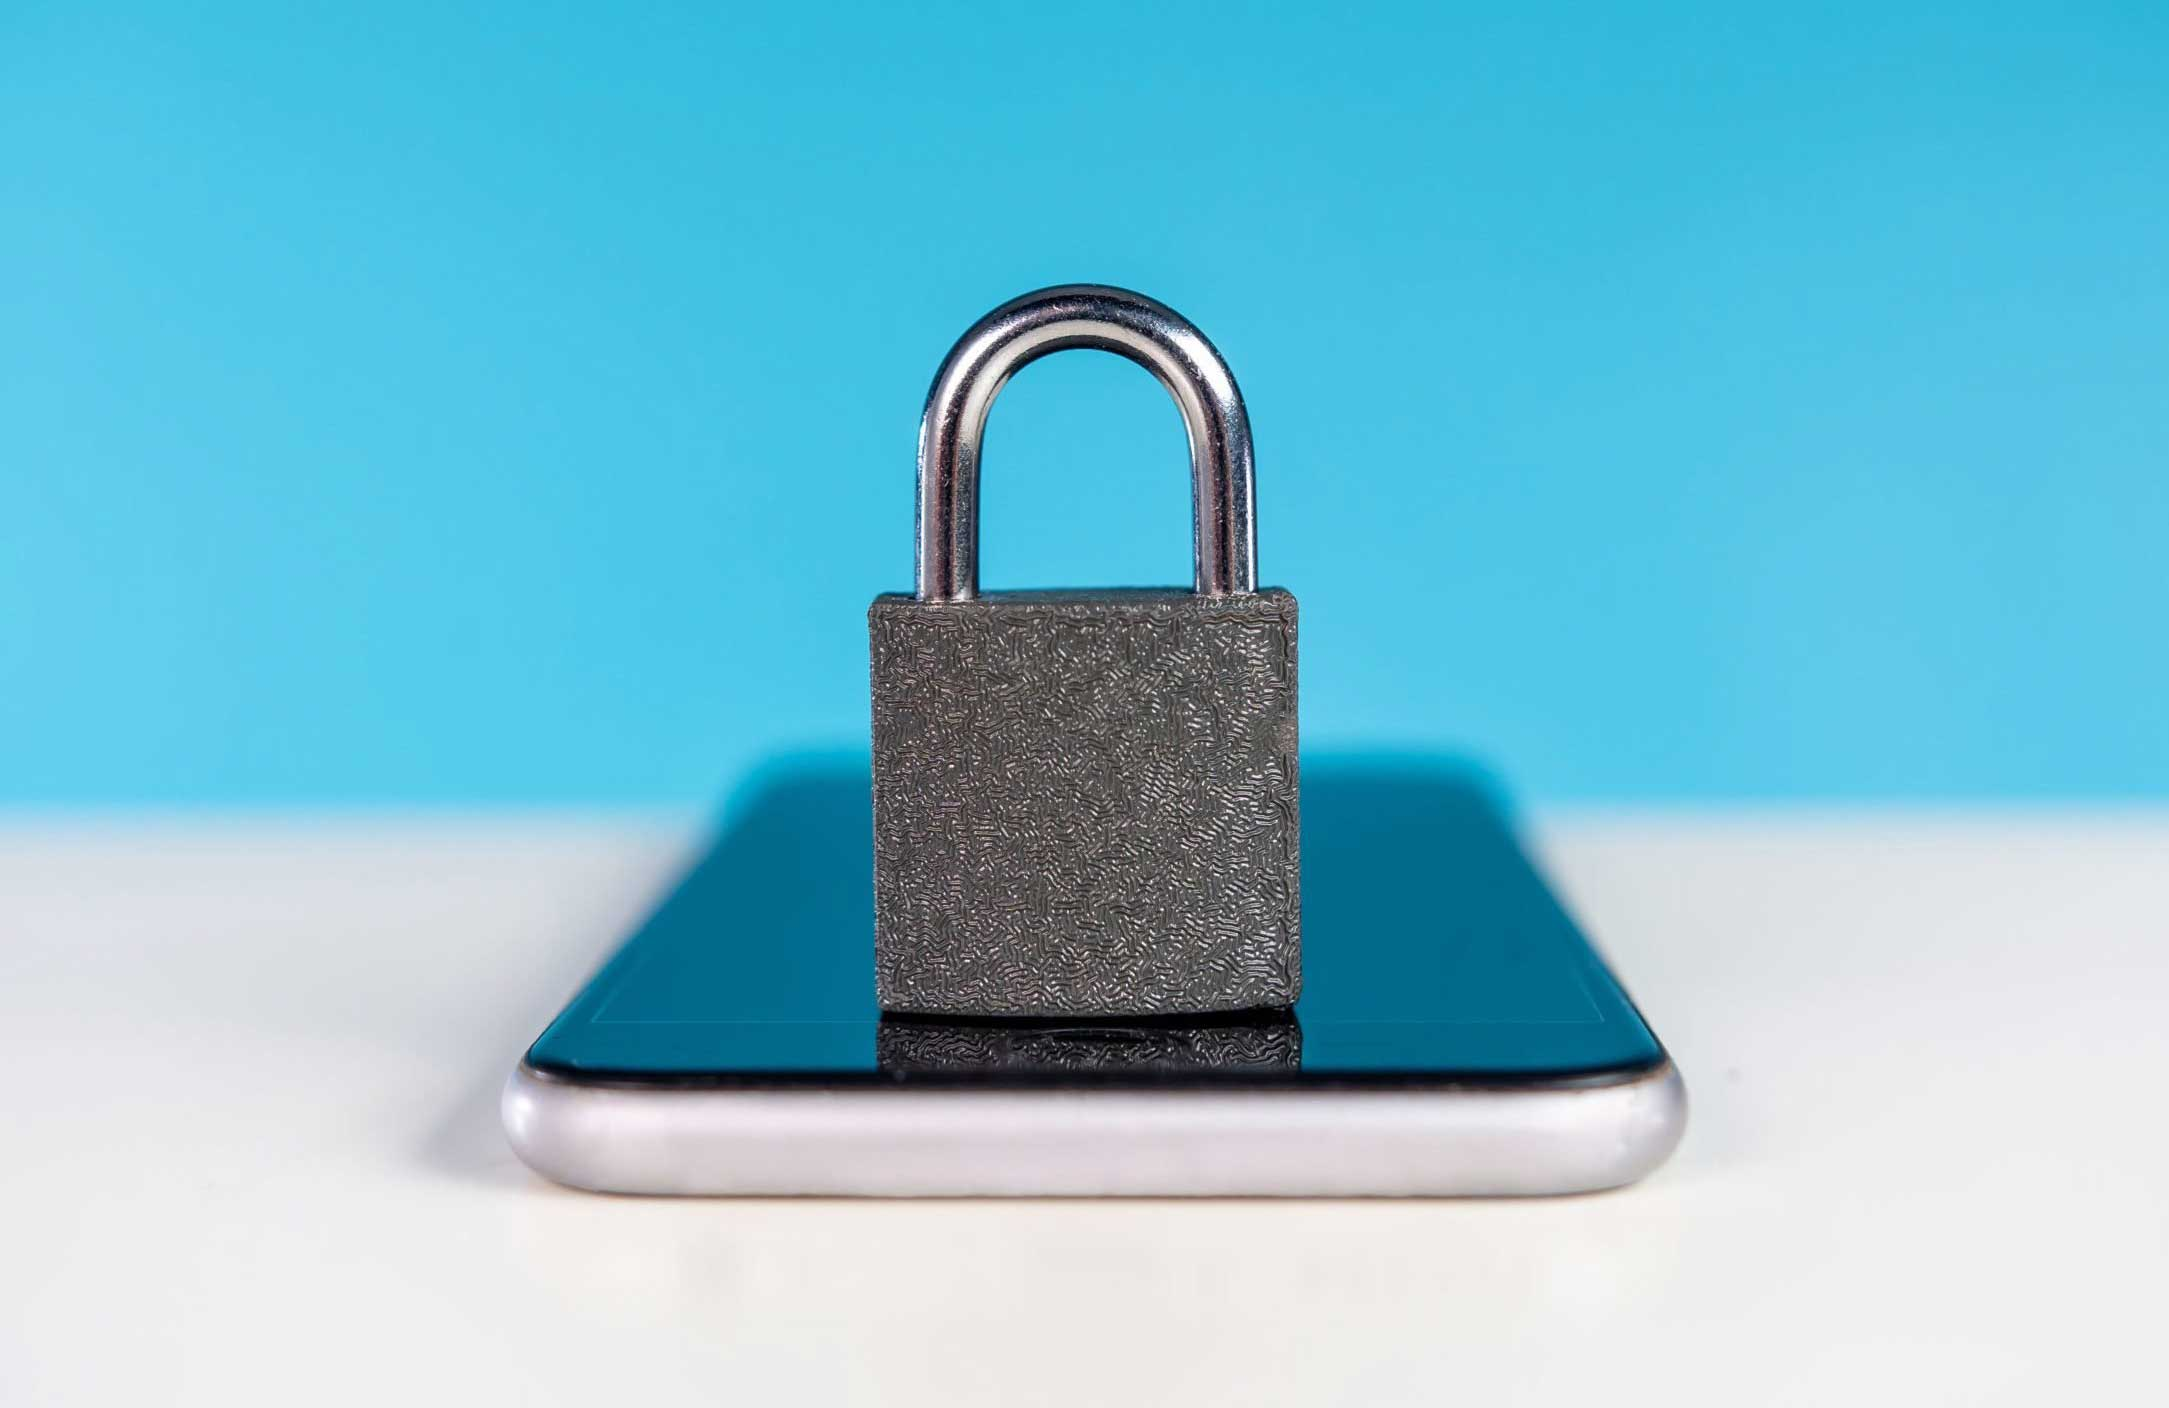 Hackers and spyware and breaches, oh my!